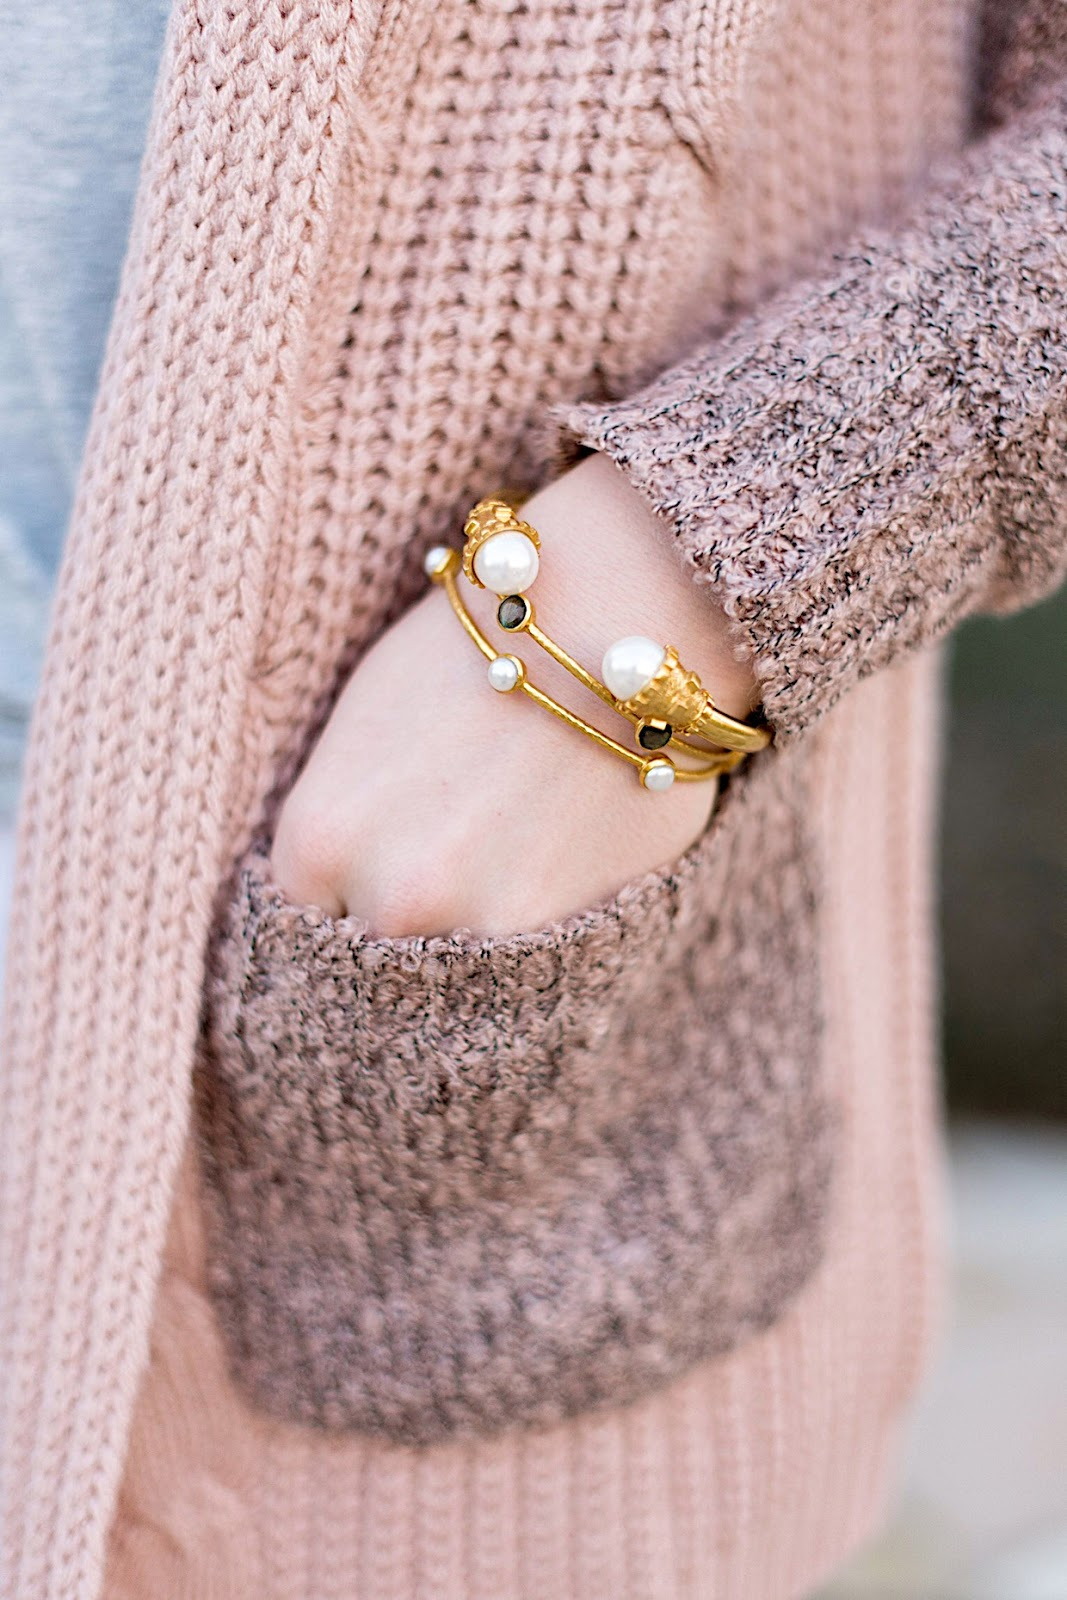 Mix Knit Cardigan & Julie Vos Bangles - Click through for the full post on Something Delightful Blog!